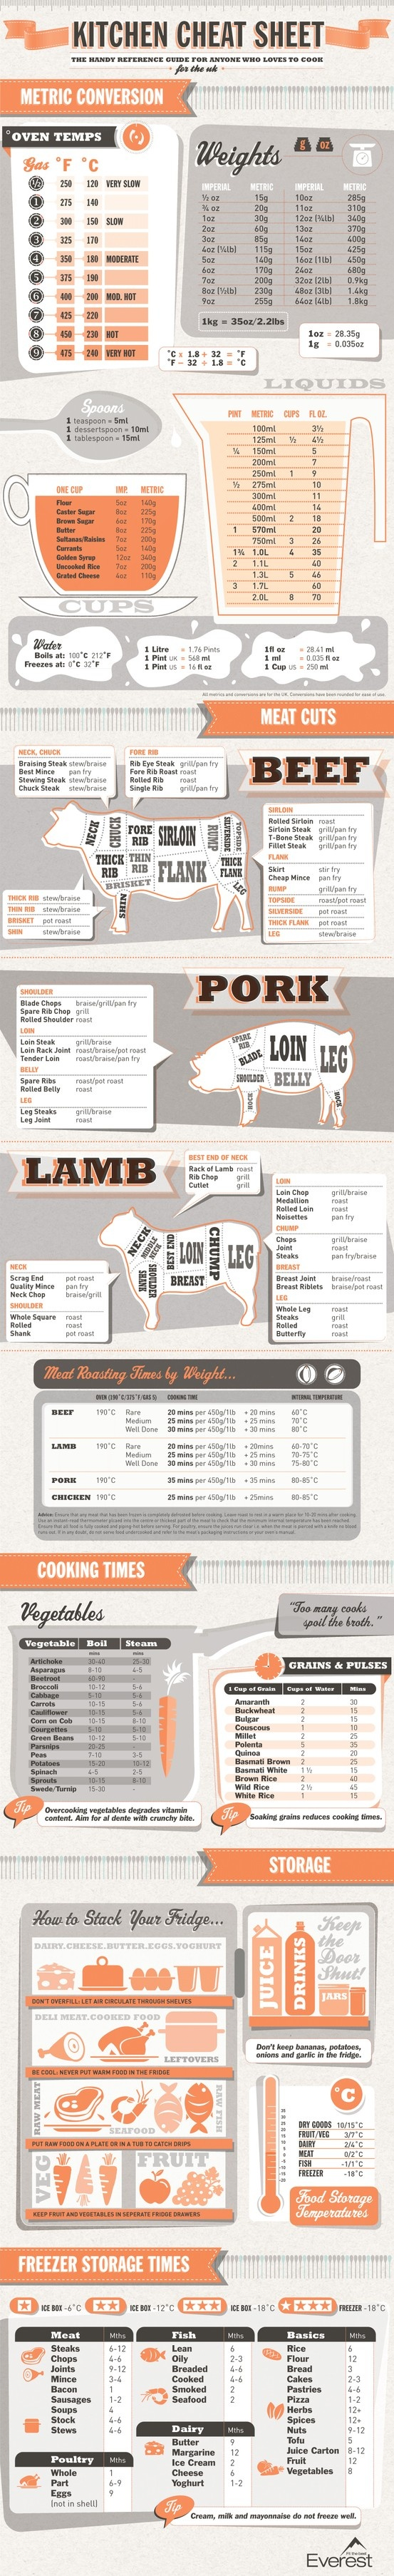 kitchen-cheat-sheet